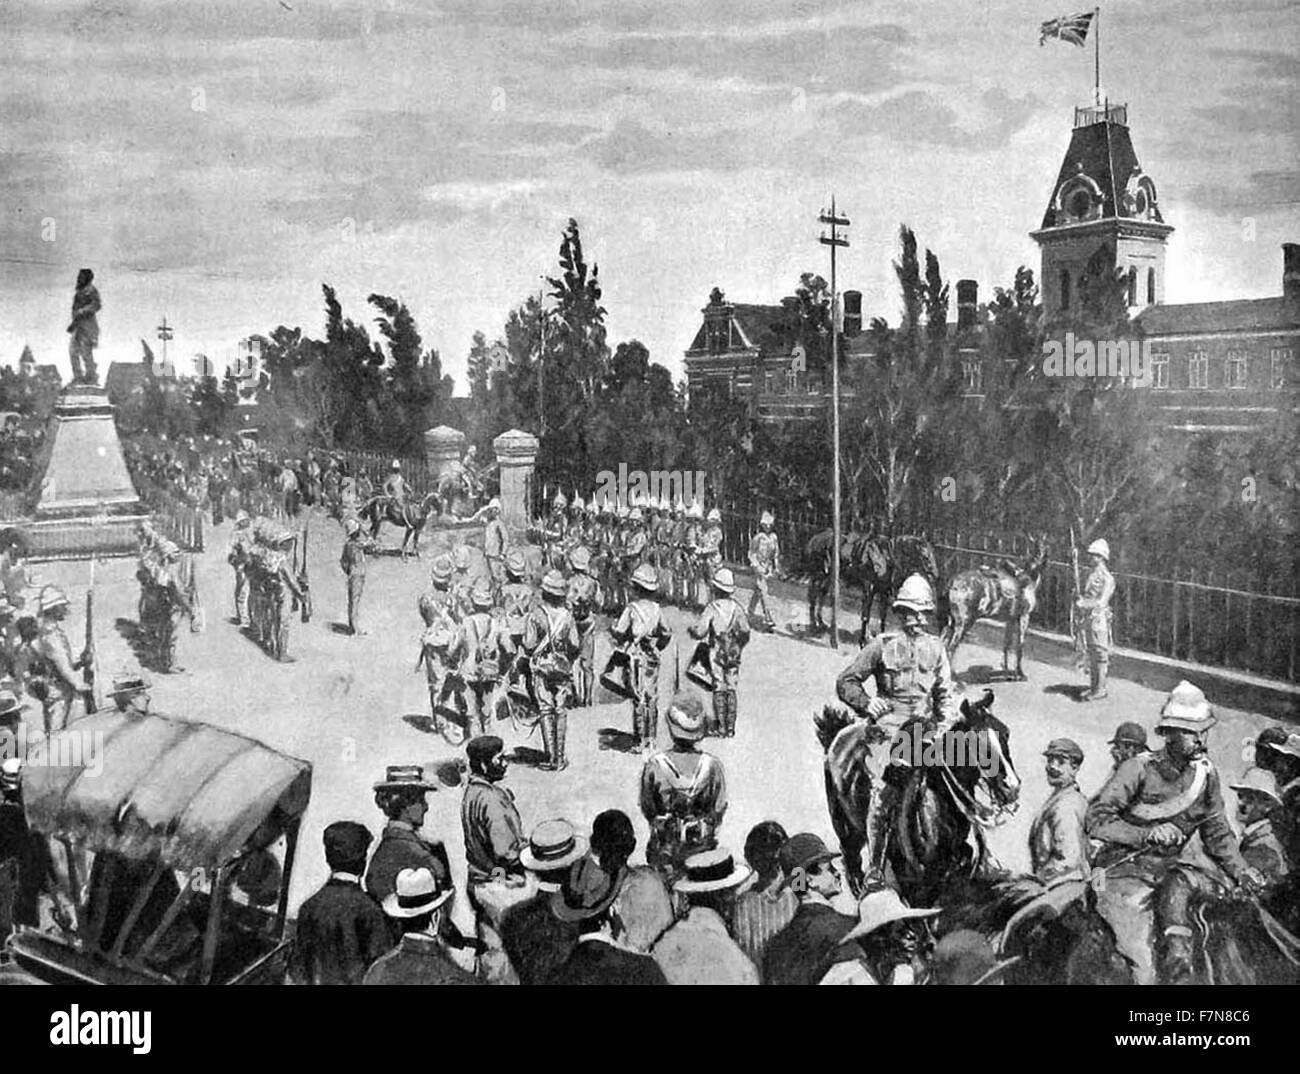 Illustration depicting the British occupation of Bloemfontein during the Second Boer War. Field Marshal Frederick - Stock Image